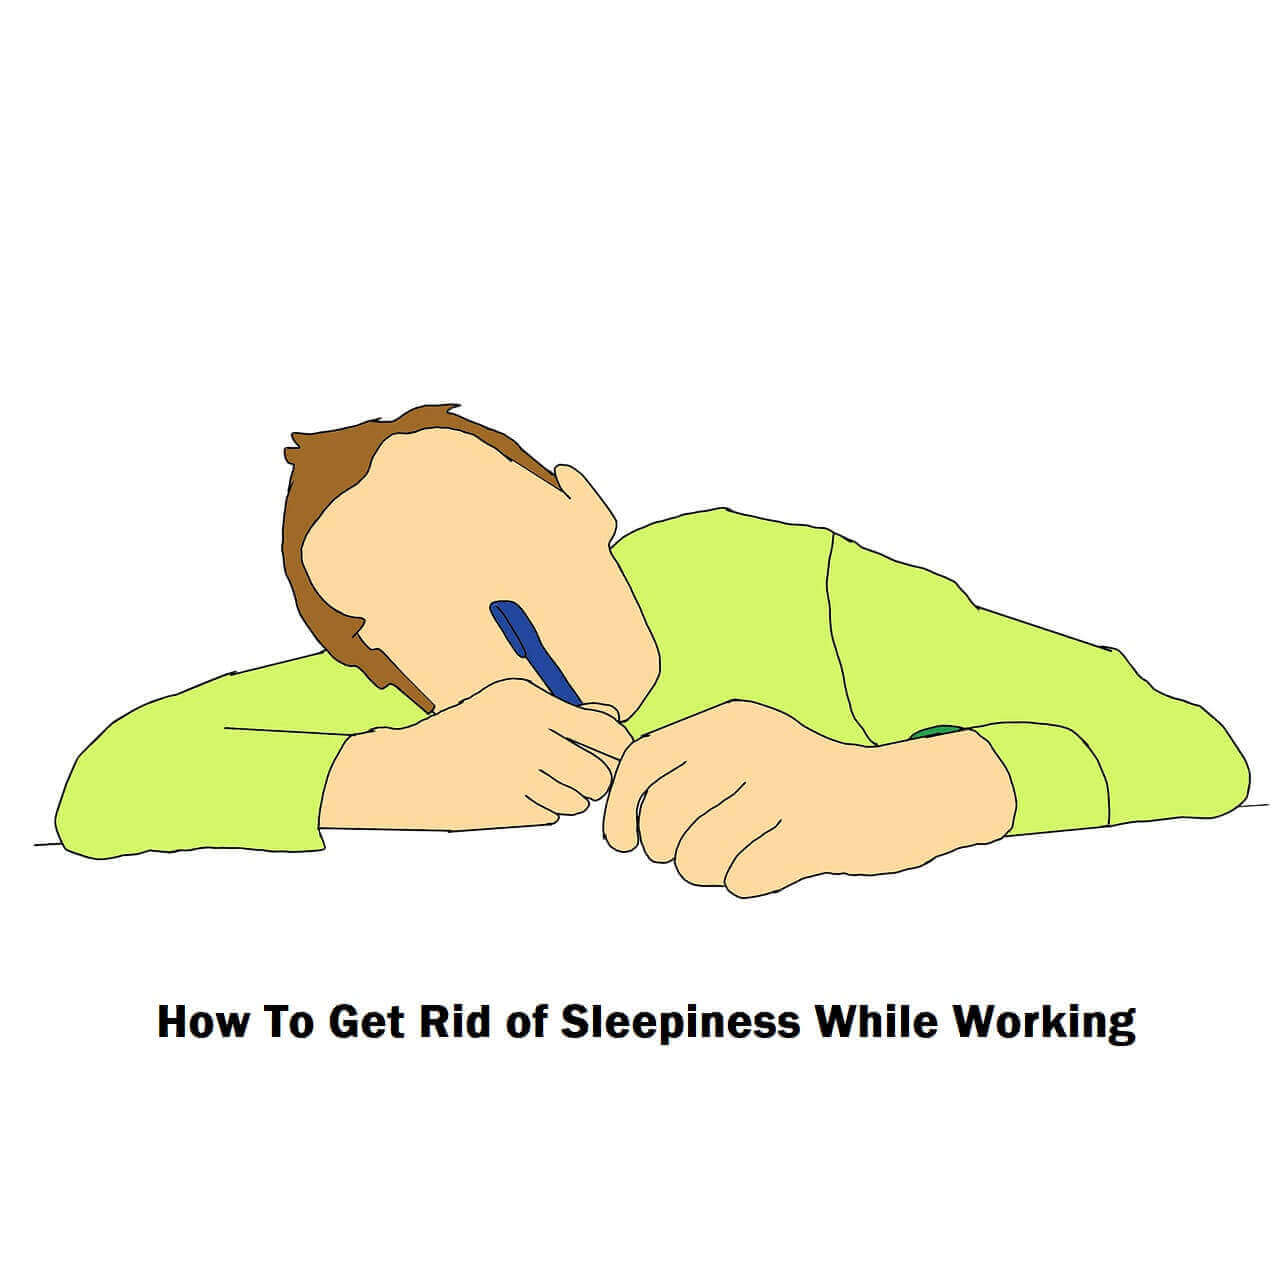 How To Get Rid of Sleepiness While Working